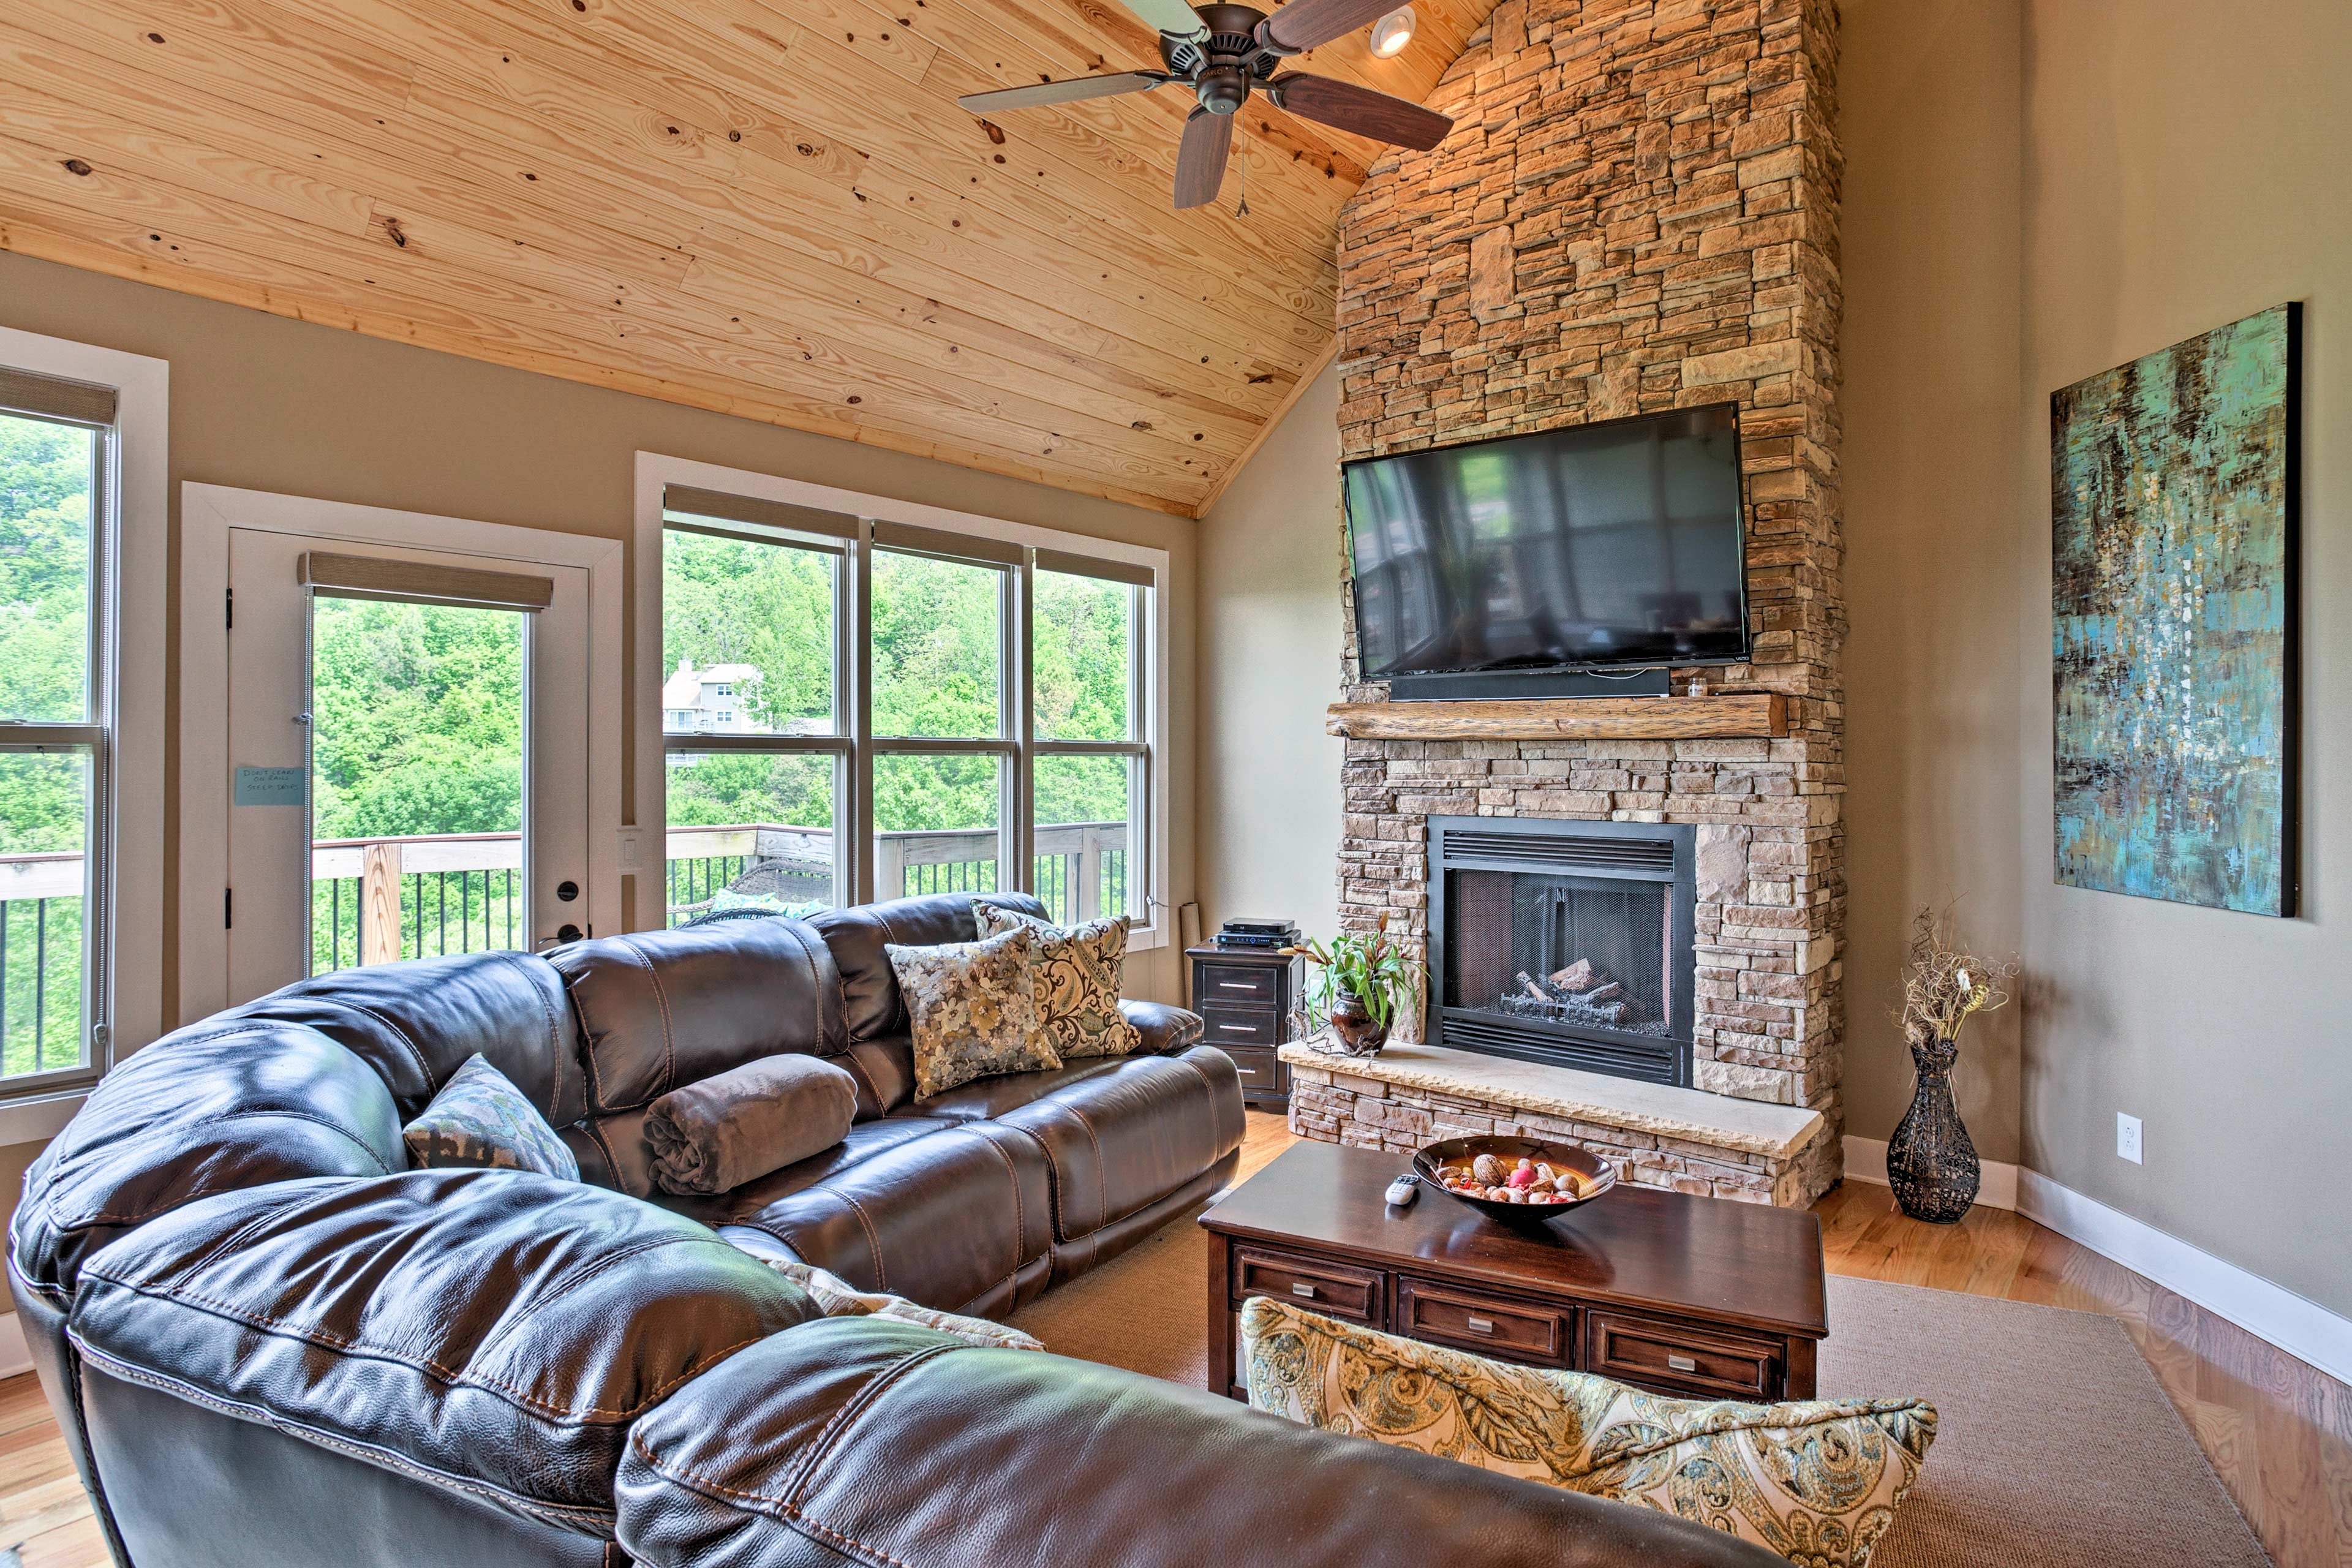 A floor-to-ceiling stone fireplace highlights the living room.